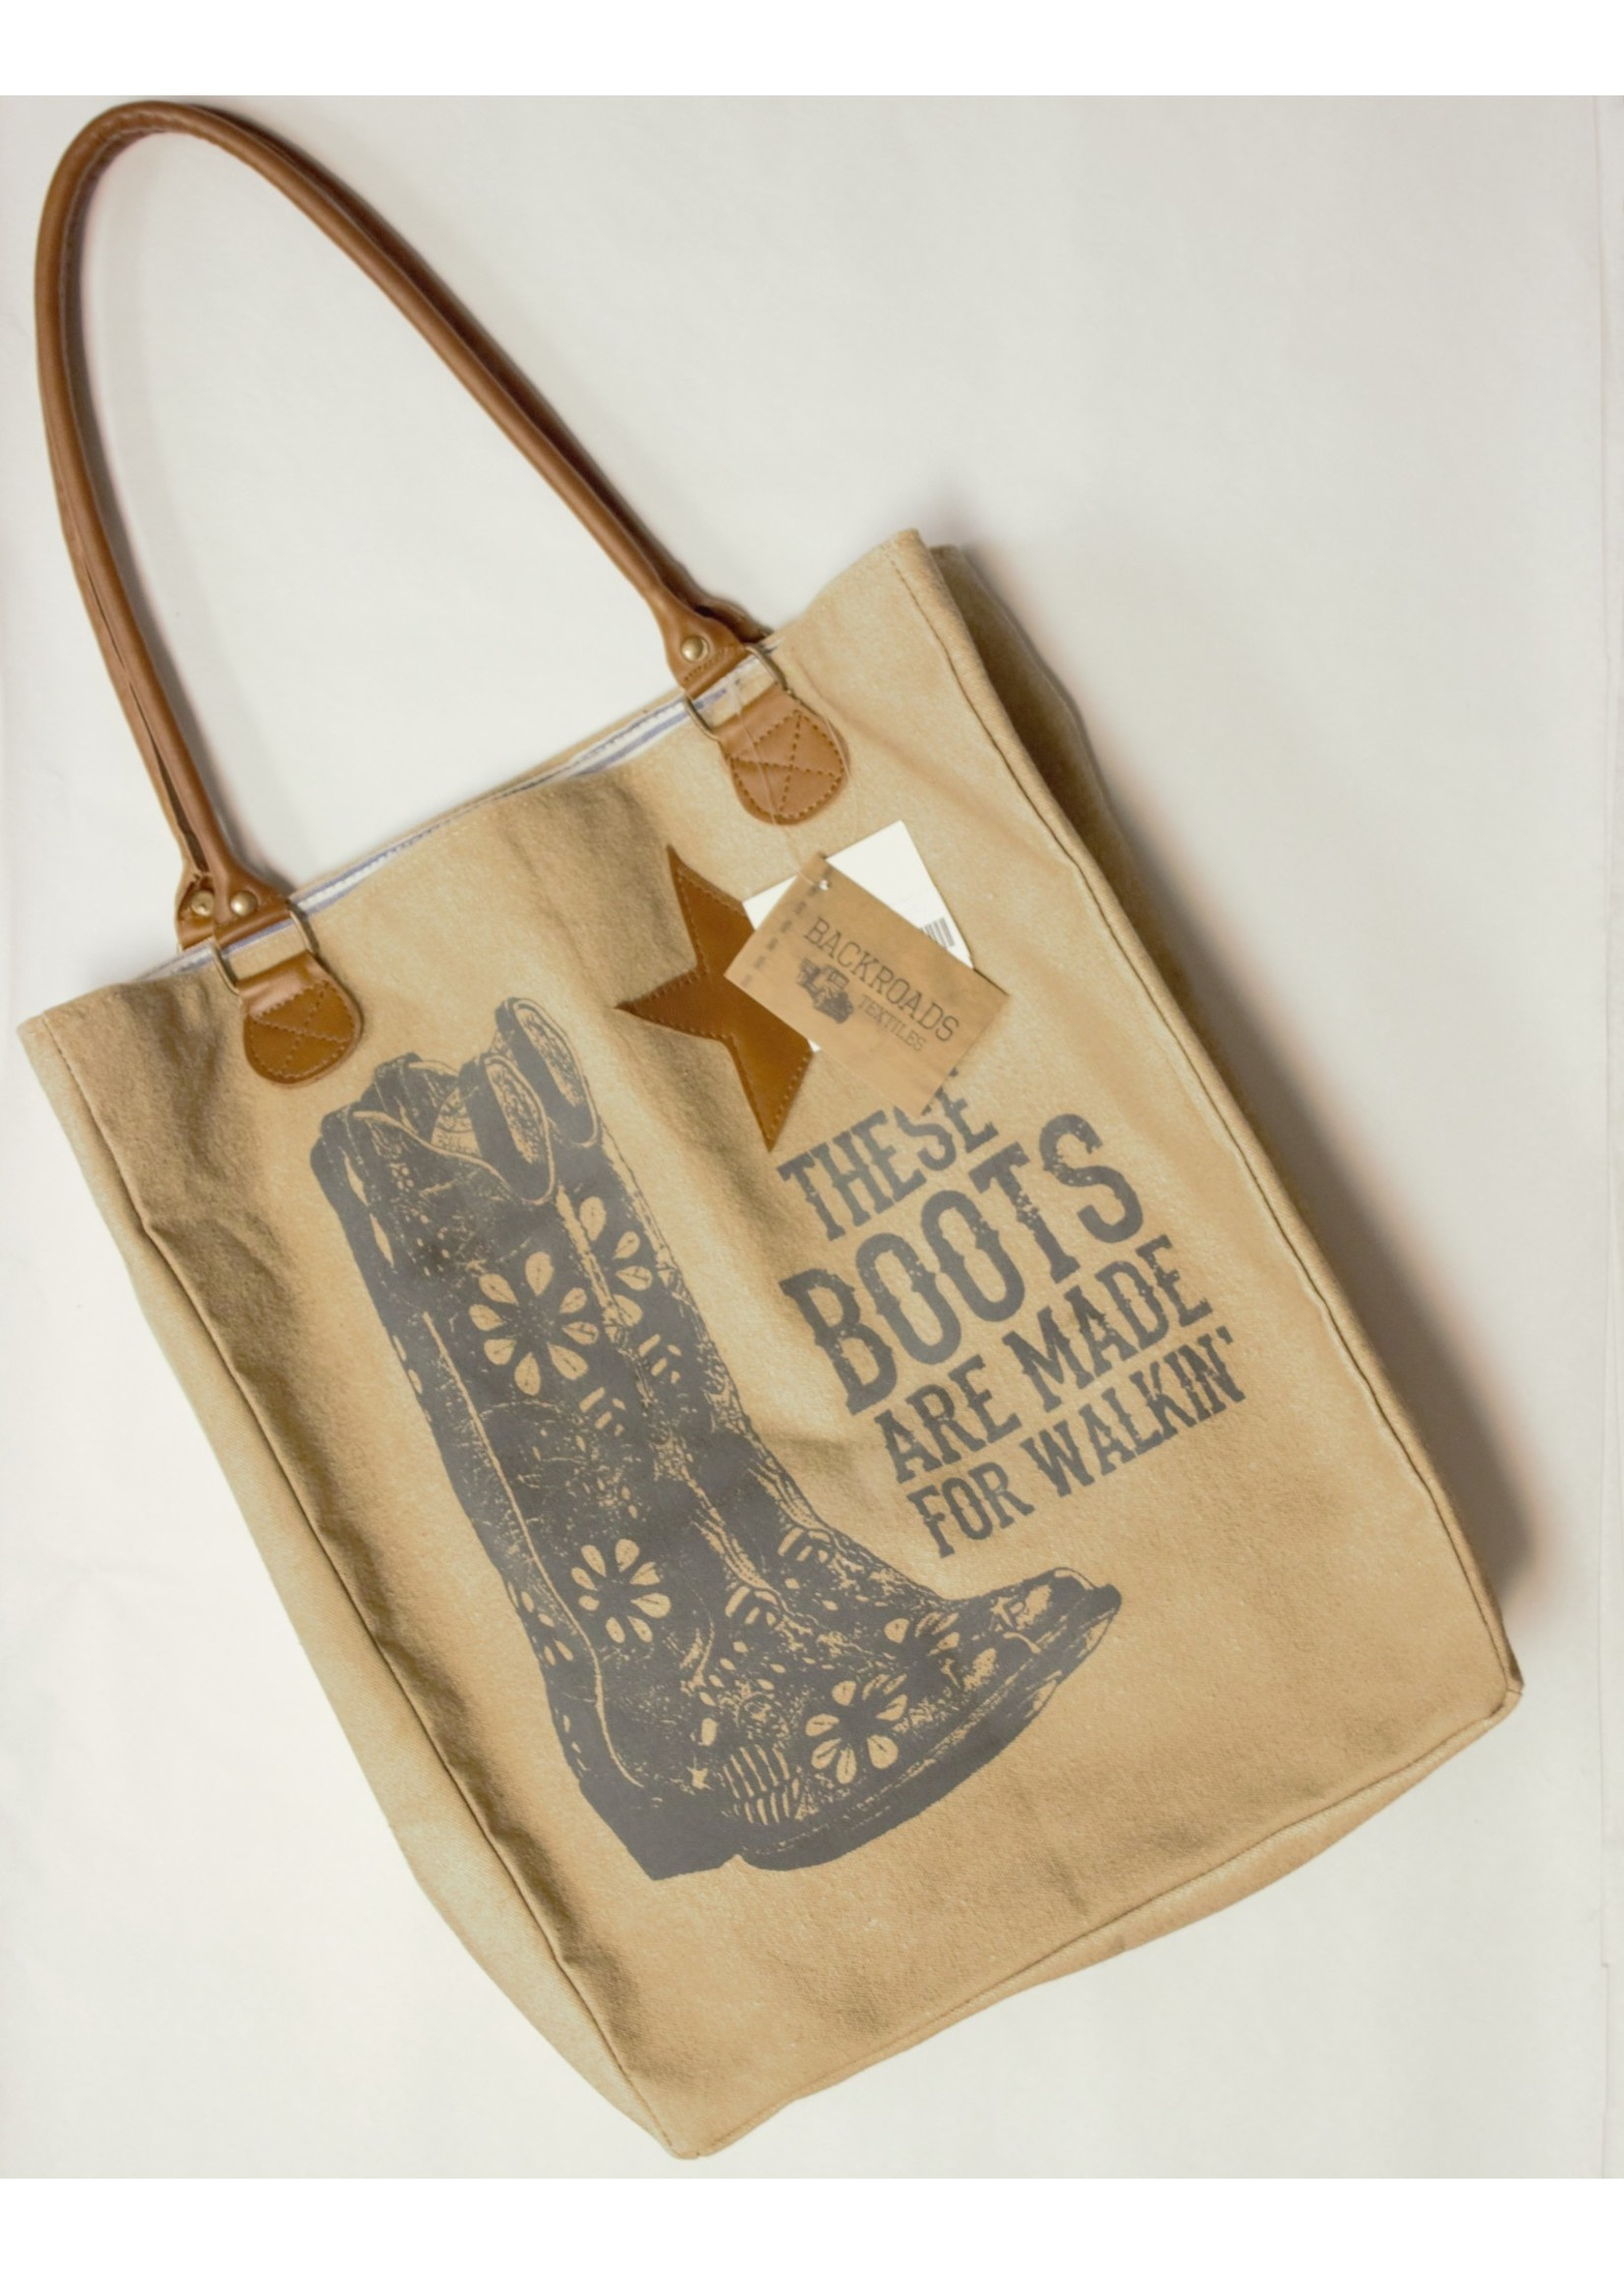 These Boots are made for Walking Market Bag